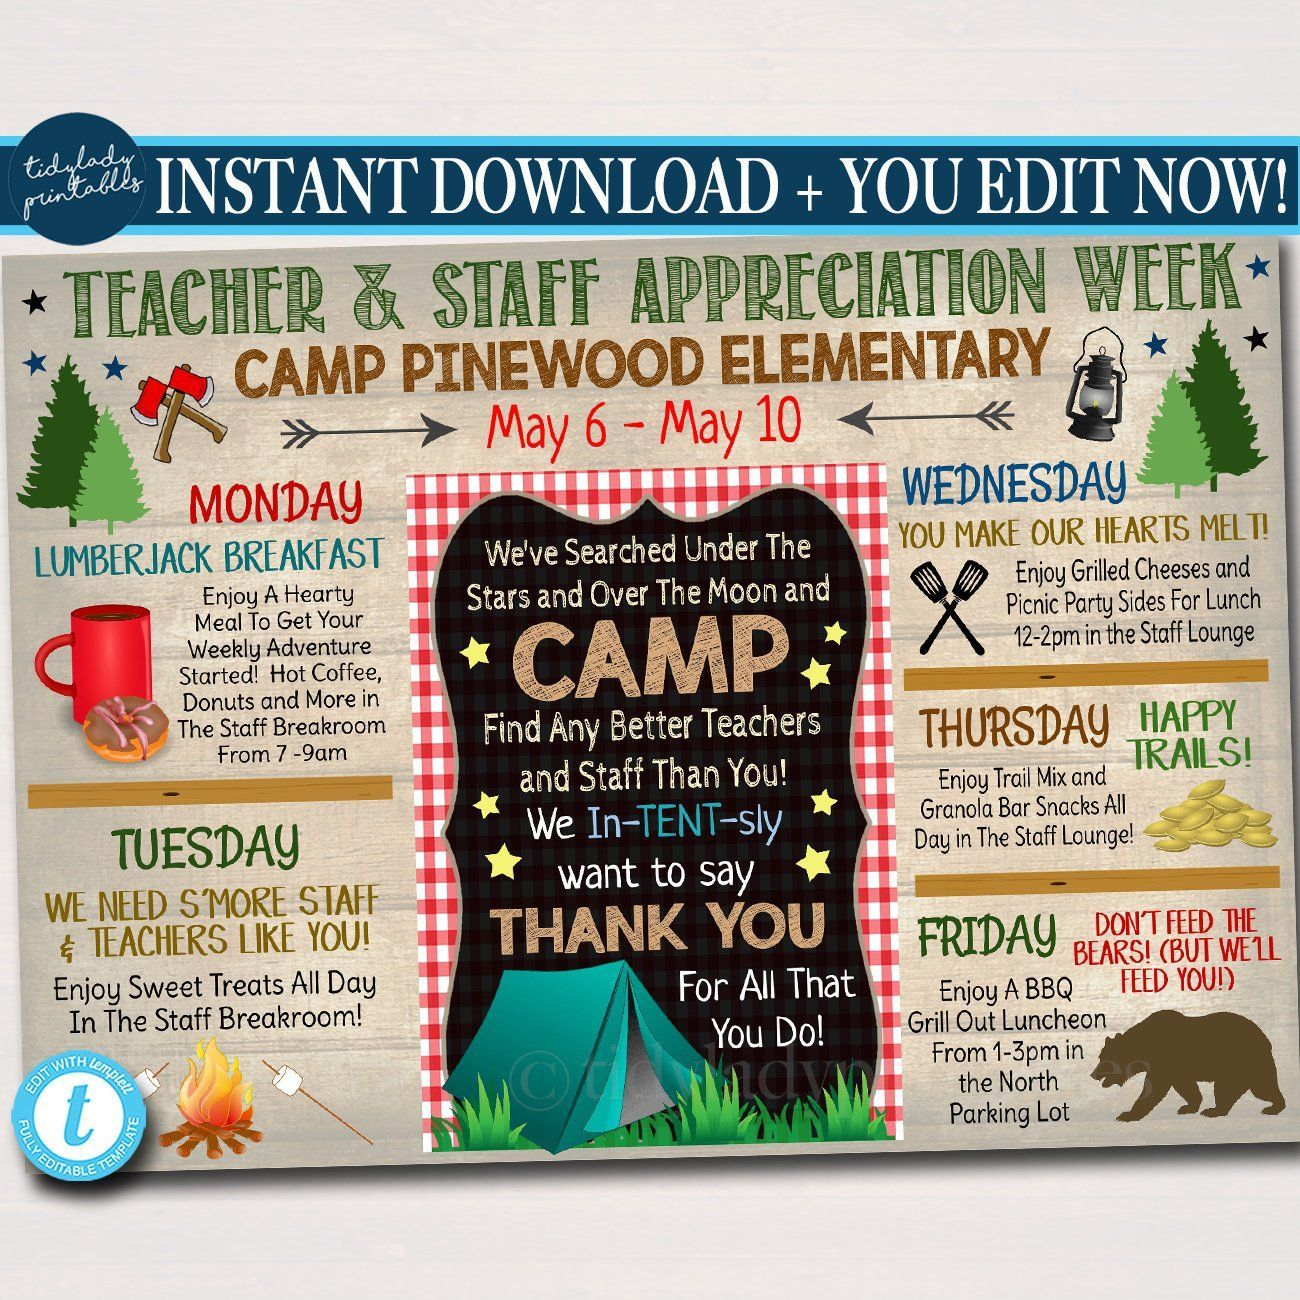 Camp Themed Teacher Appreciation Week Itinerary Poster, Outdoor Wilderness Appreciation Schedule Events,  Printable,  #appreciation #camp #events #homeschoolingideasprintables #Itinerary #outdoor #poster #Printable #schedule #Teacher #themed #Week #Wilderness